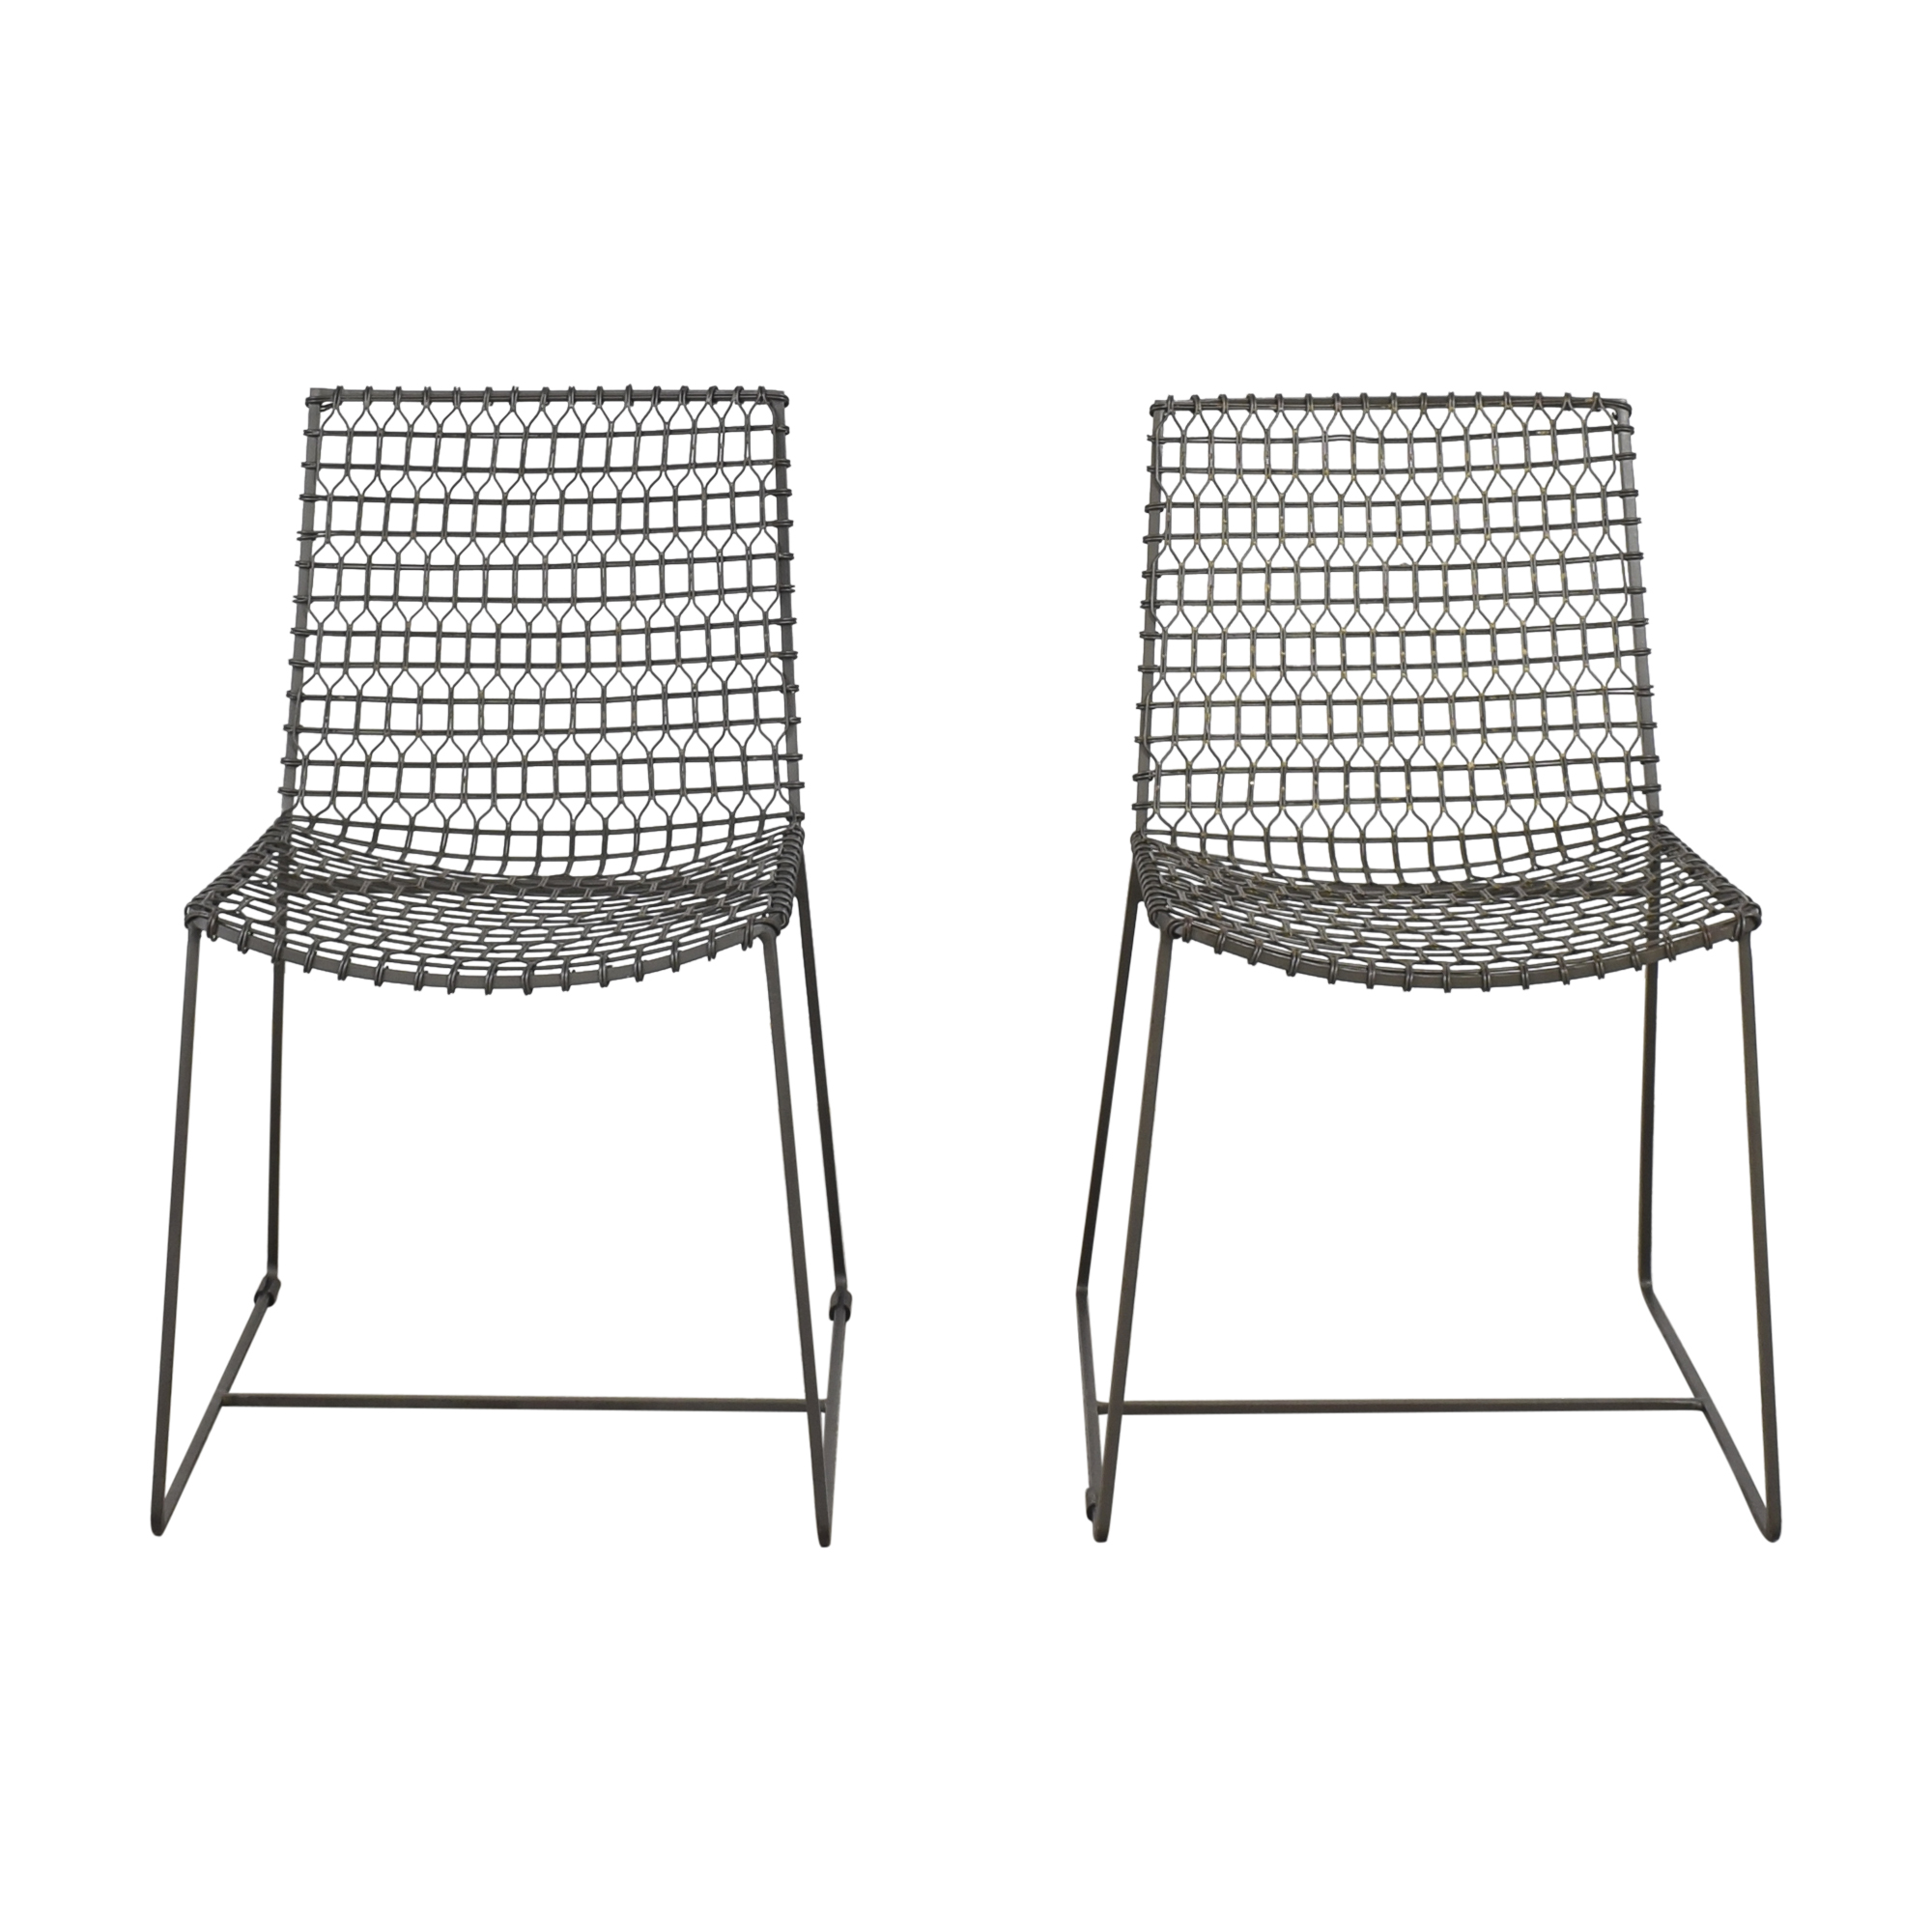 buy Crate & Barrel Tig Dining Chairs Crate & Barrel Chairs